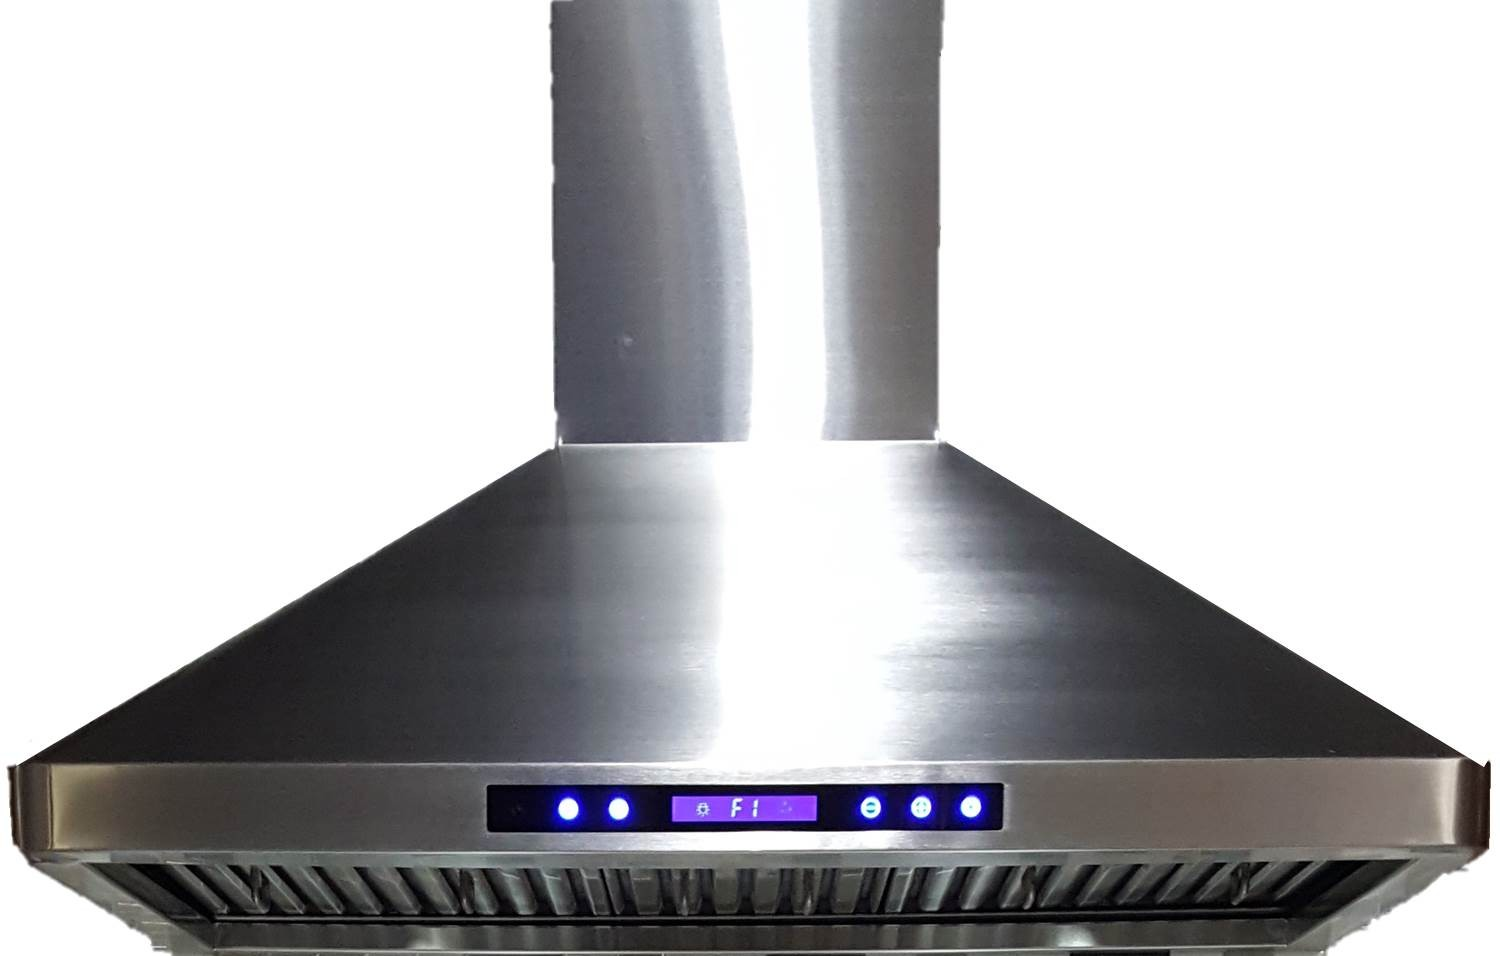 hood kitchen lamp verona vehood36ch 36 inch chimney range with remote control